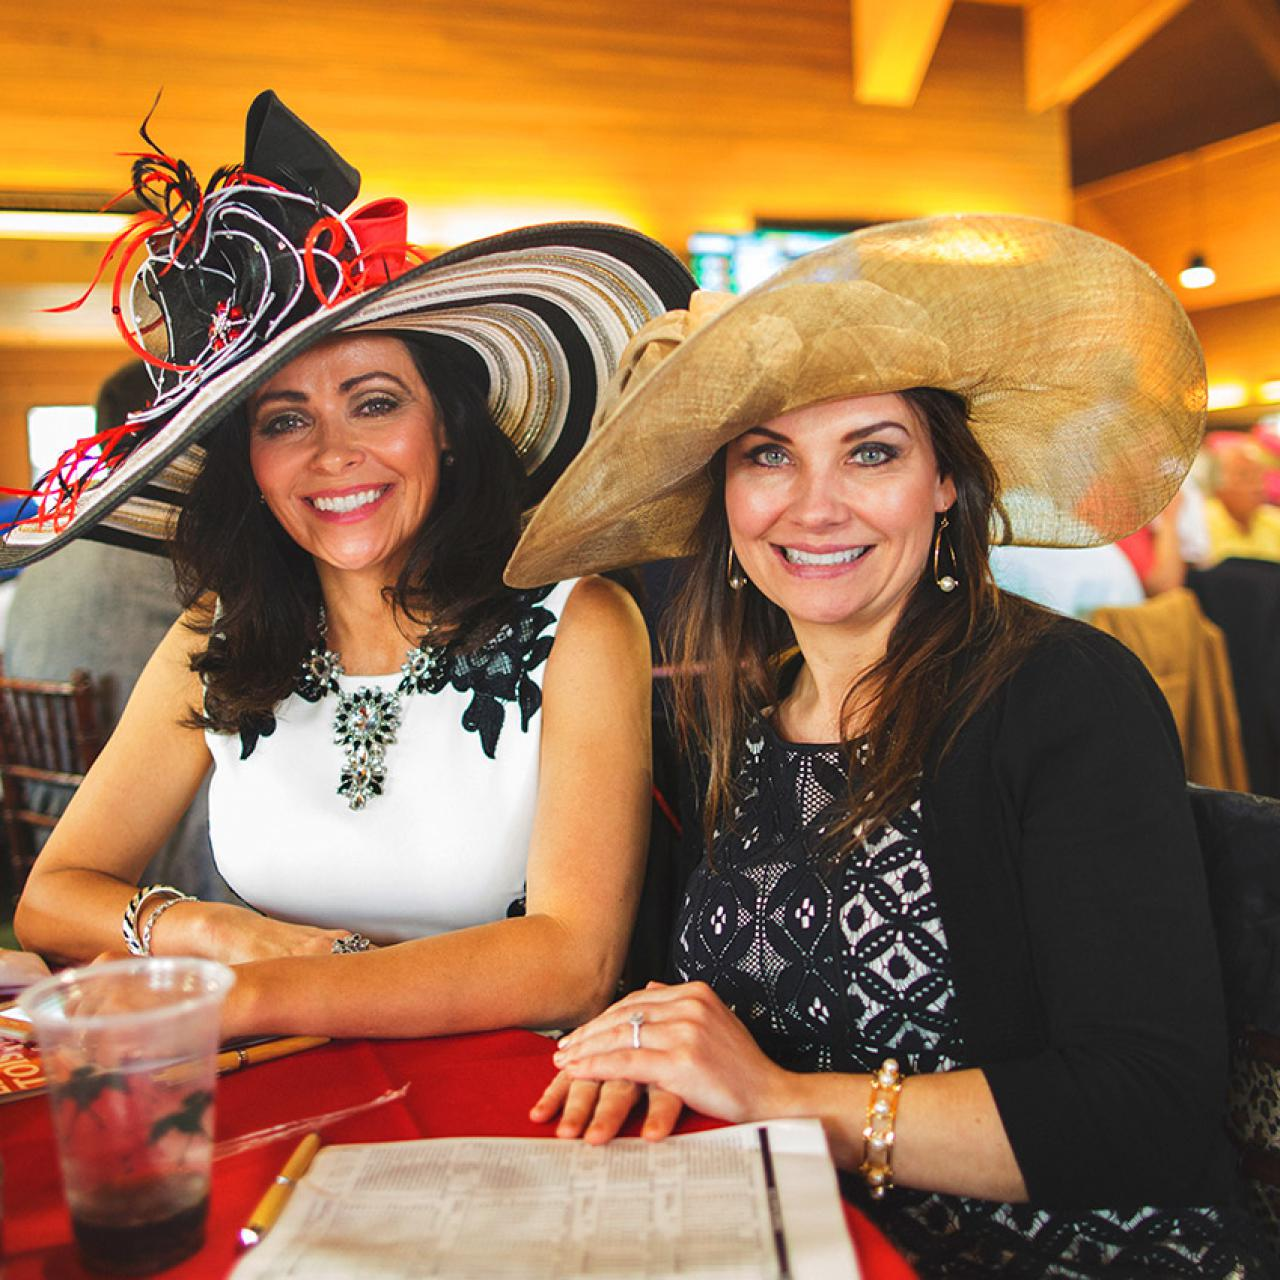 Derby Oaks Day at Keeneland